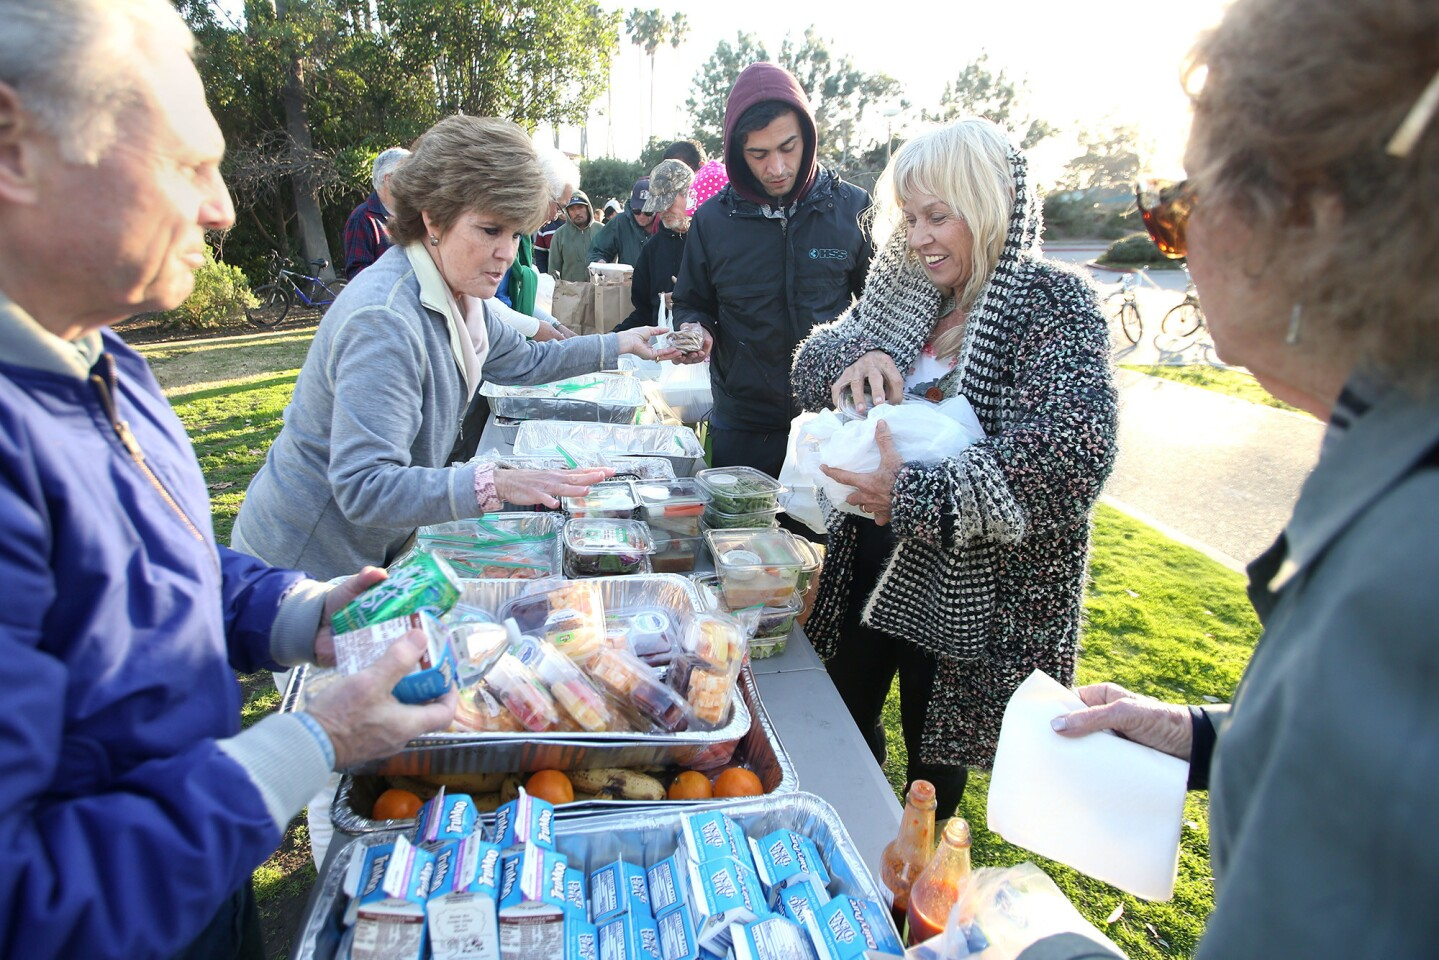 The Welcome Inn meal service at Doheny State Beach